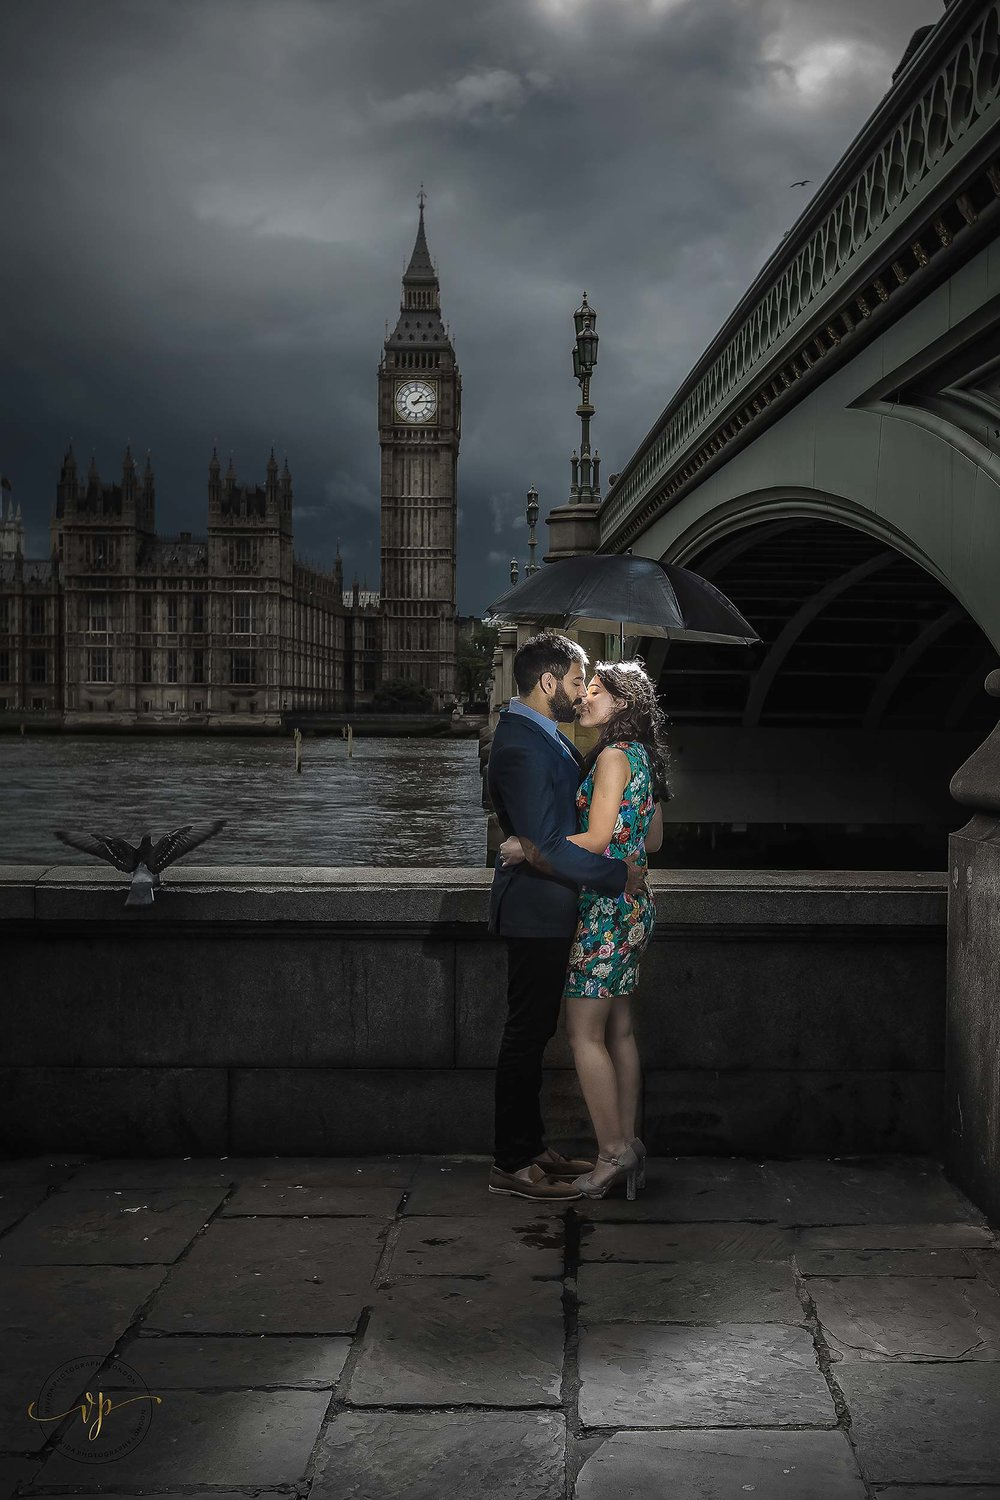 pre+wedding+photography+london+76.jpg